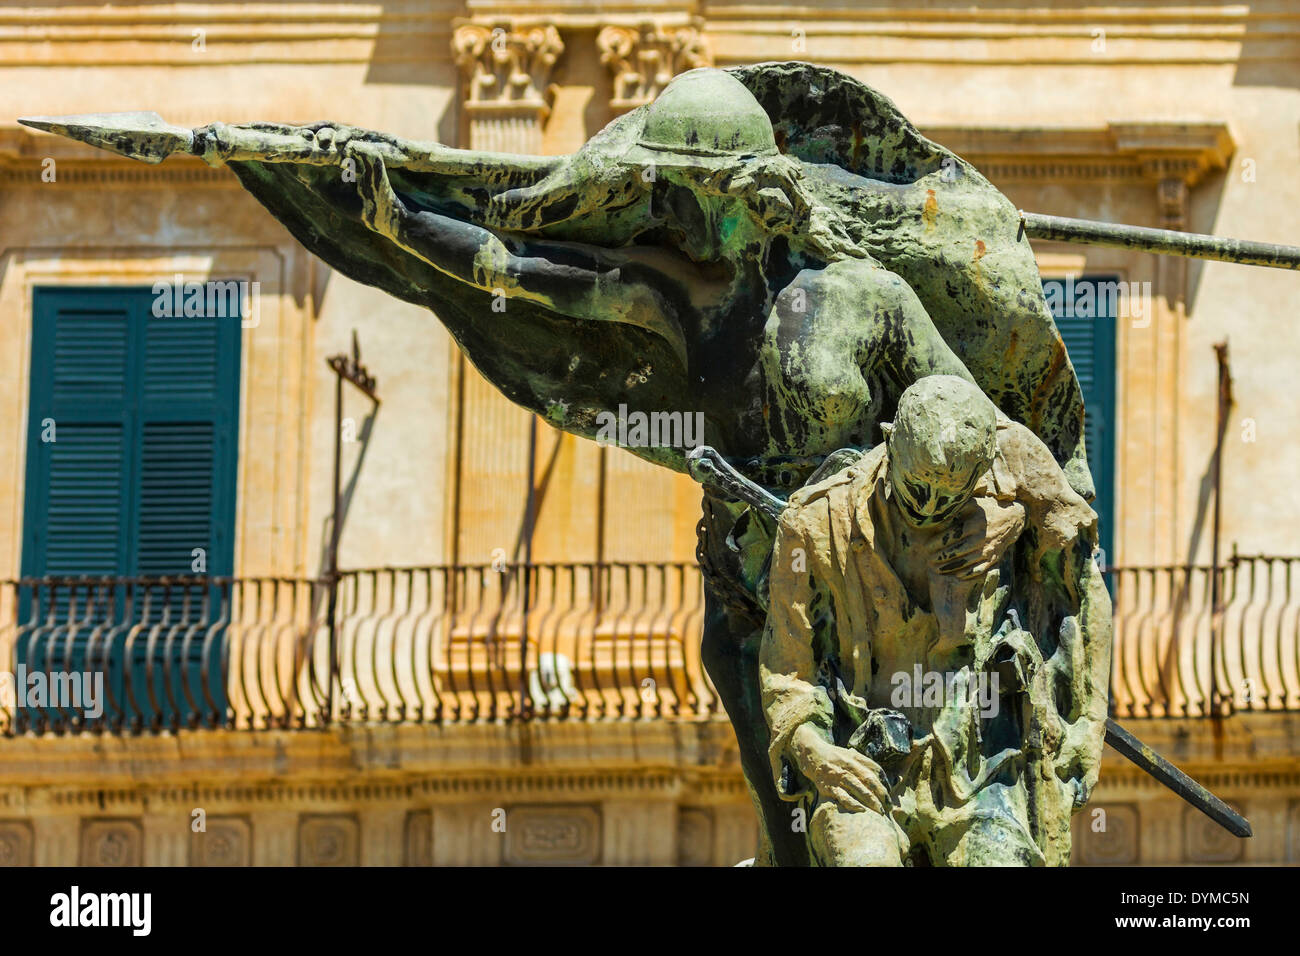 Monument to the First World War at this World Heritage city, famed for Sicilian Baroque architecture; Noto, Sicily, Italy - Stock Image